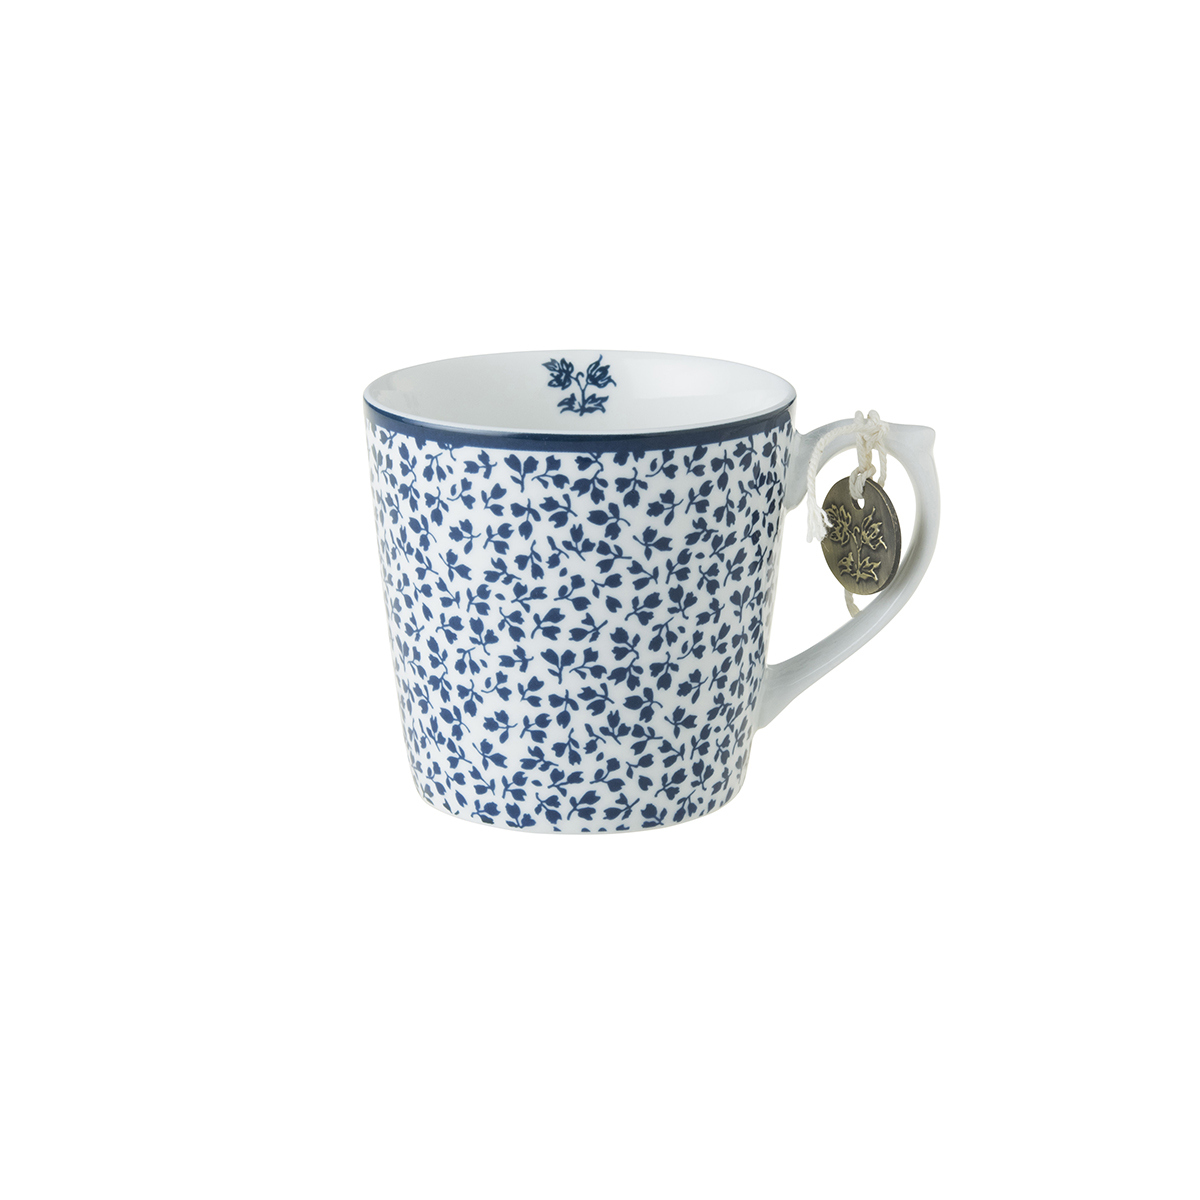 Mini mug Floris van Laura Ashley